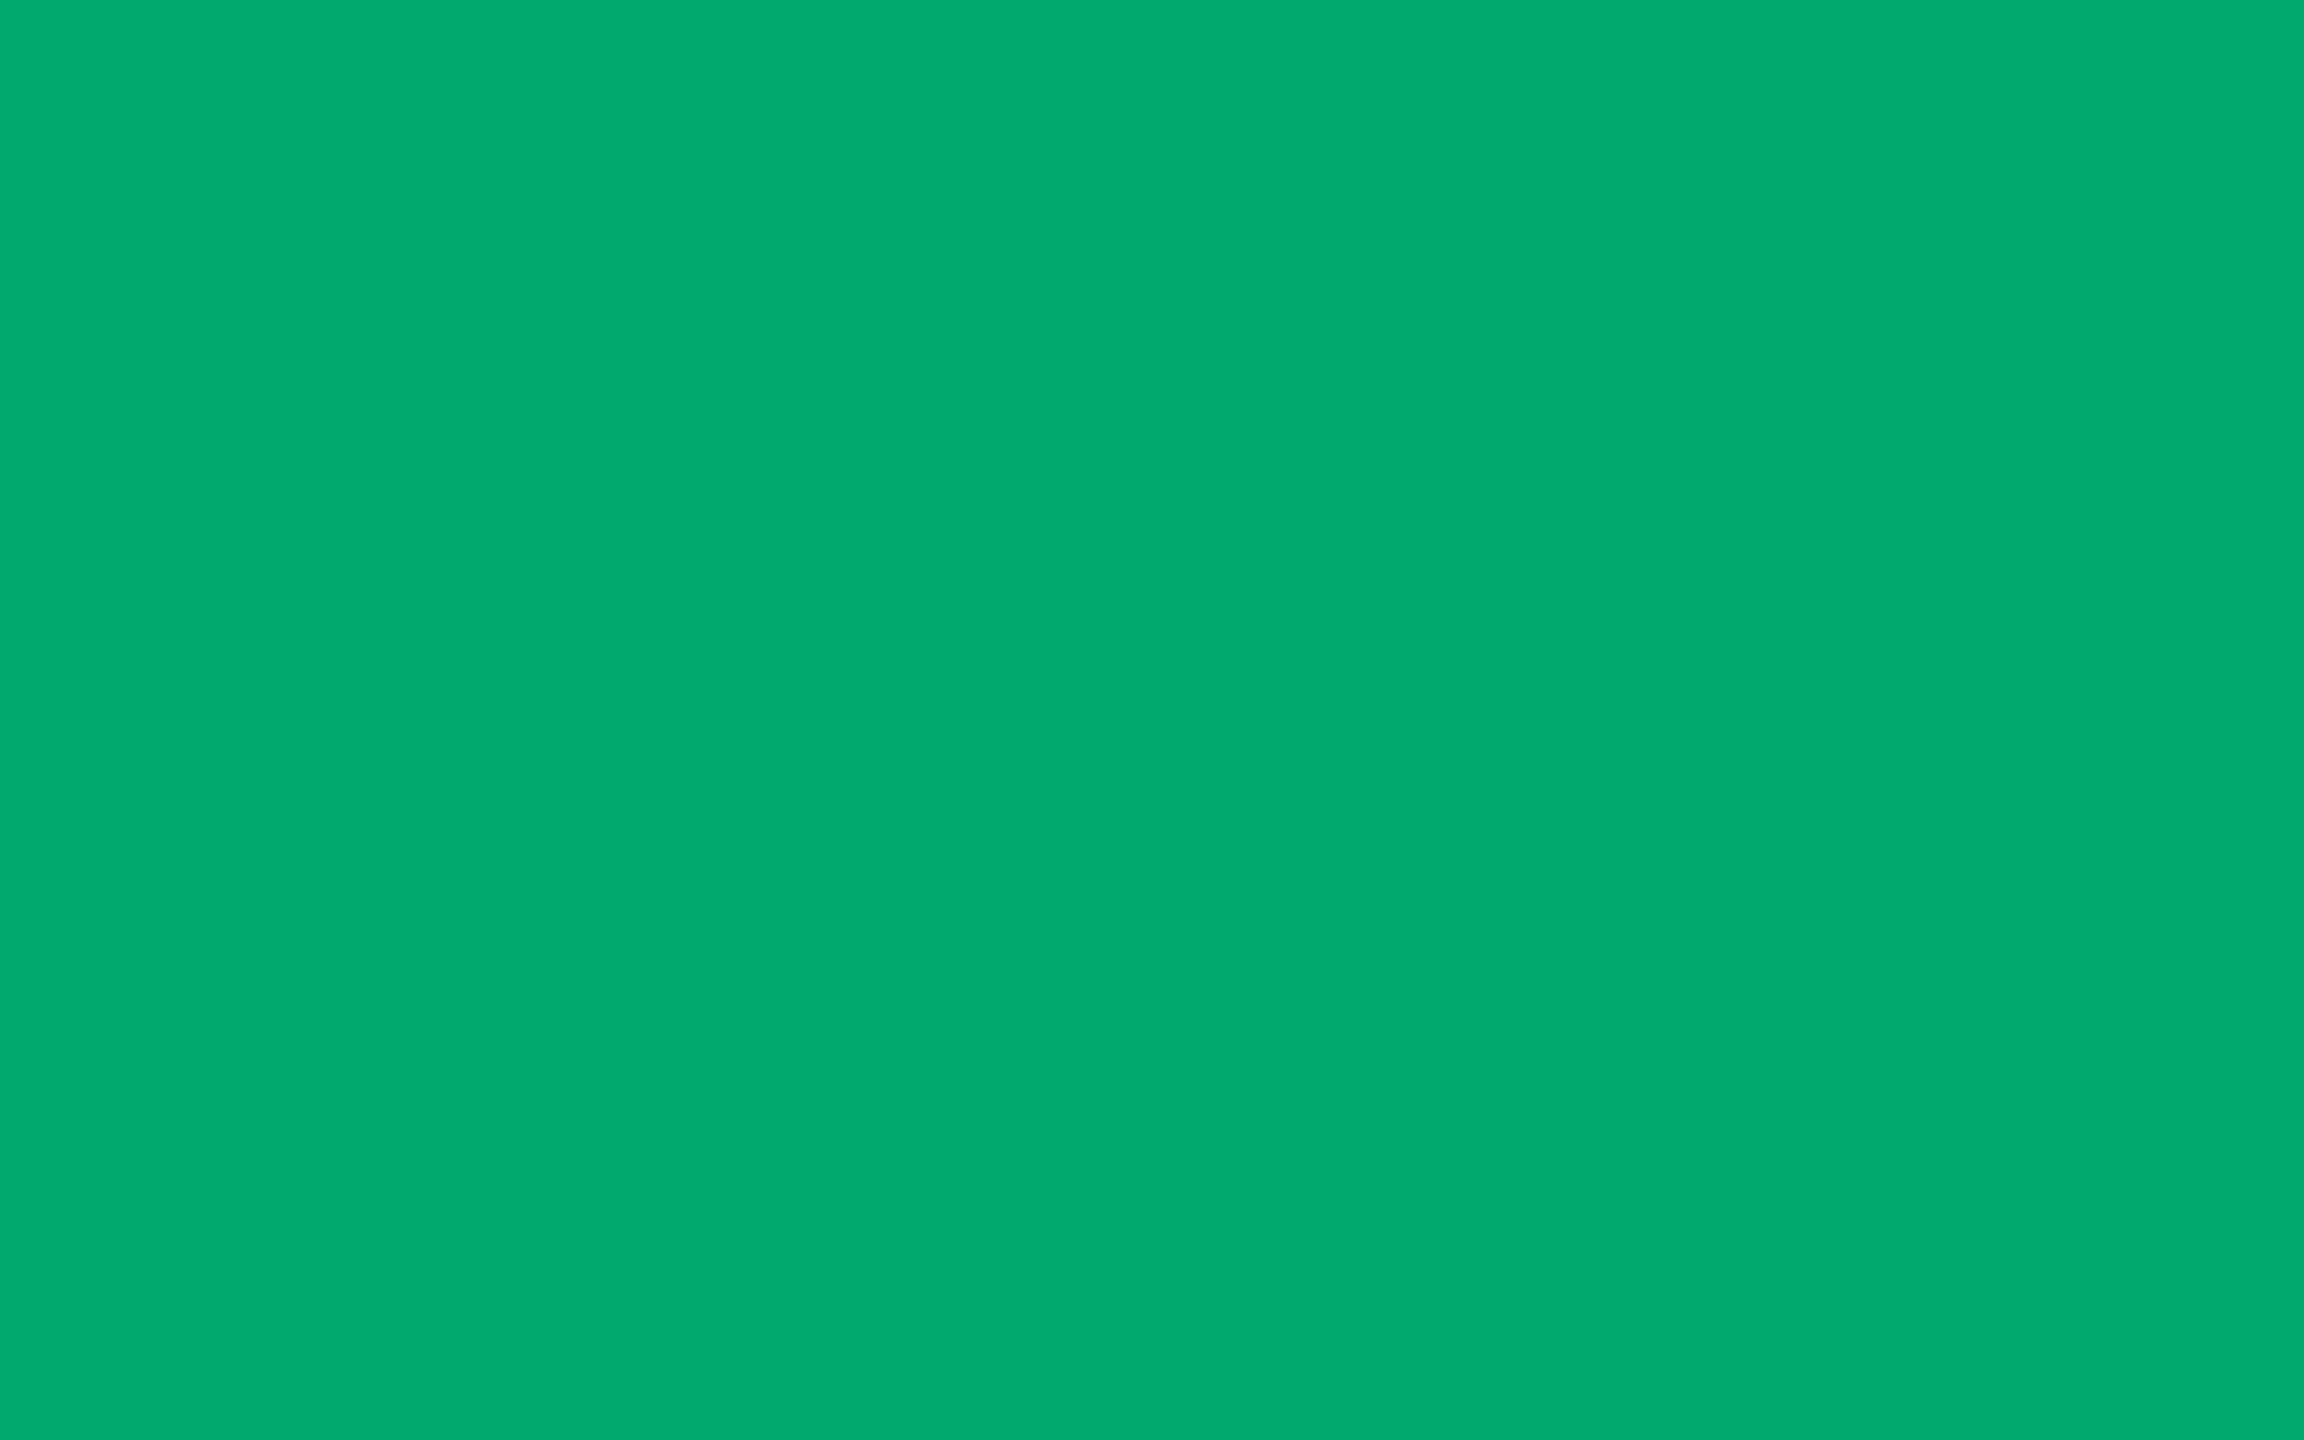 2304x1440 Jade Solid Color Background